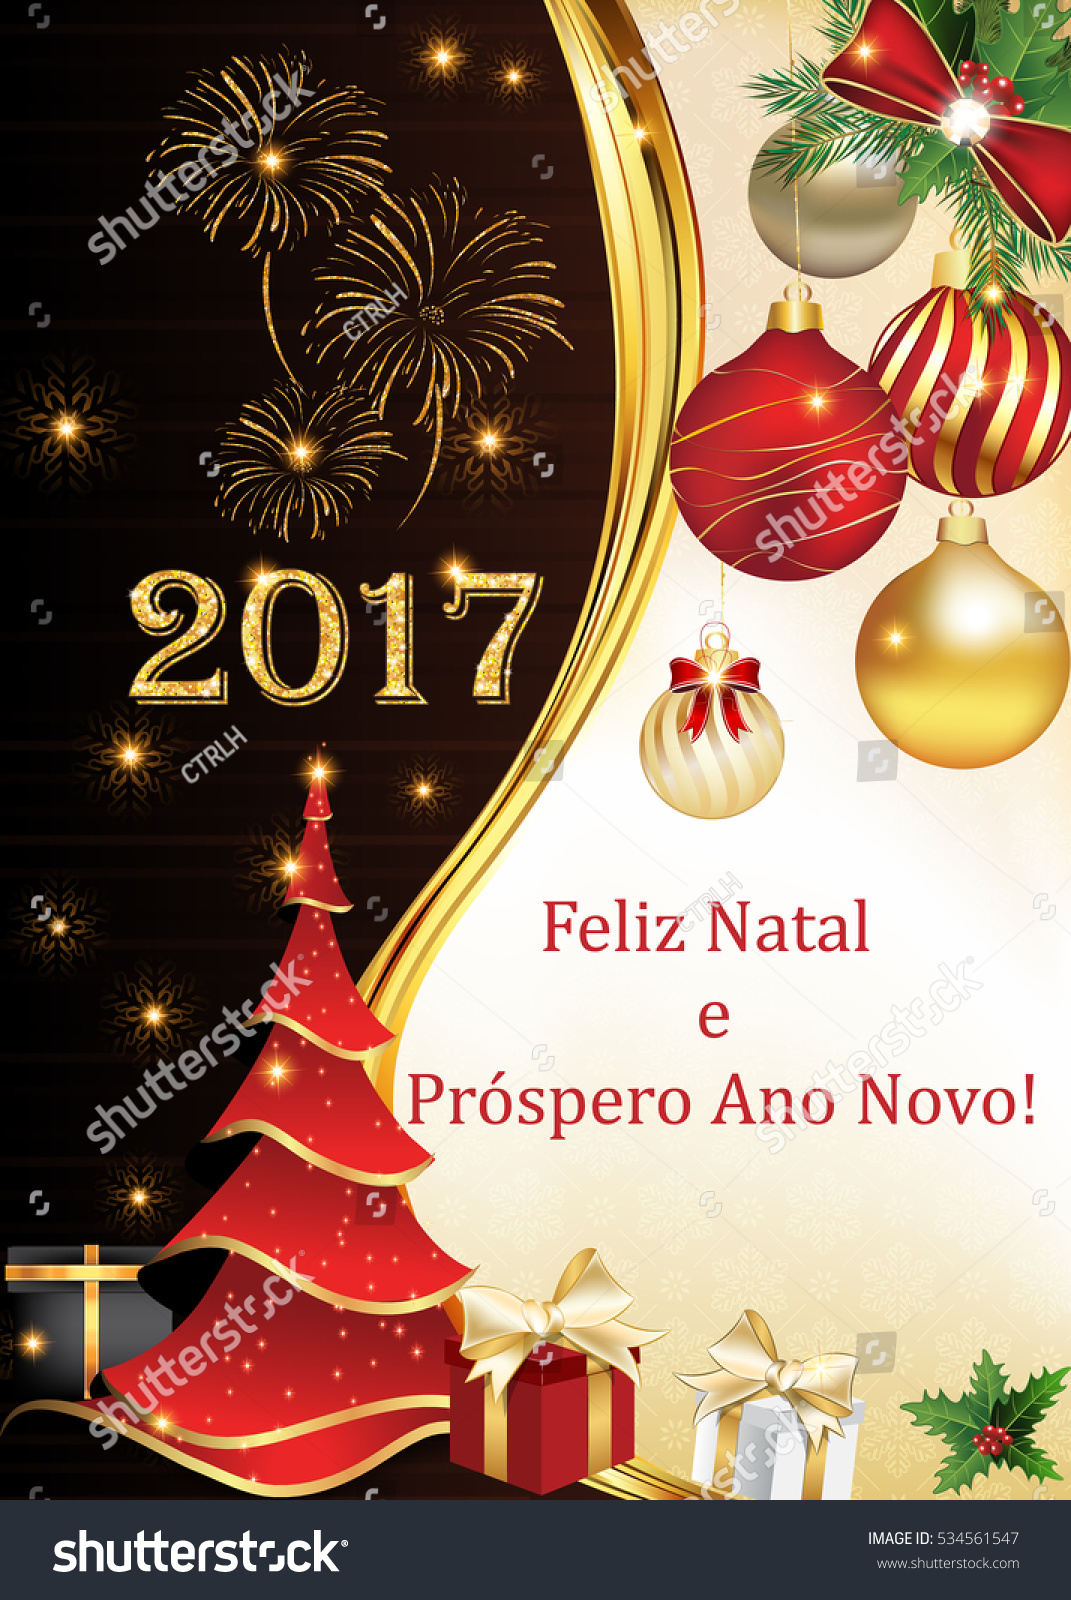 Portuguese Business Seasons Greetings Christmas New Stock